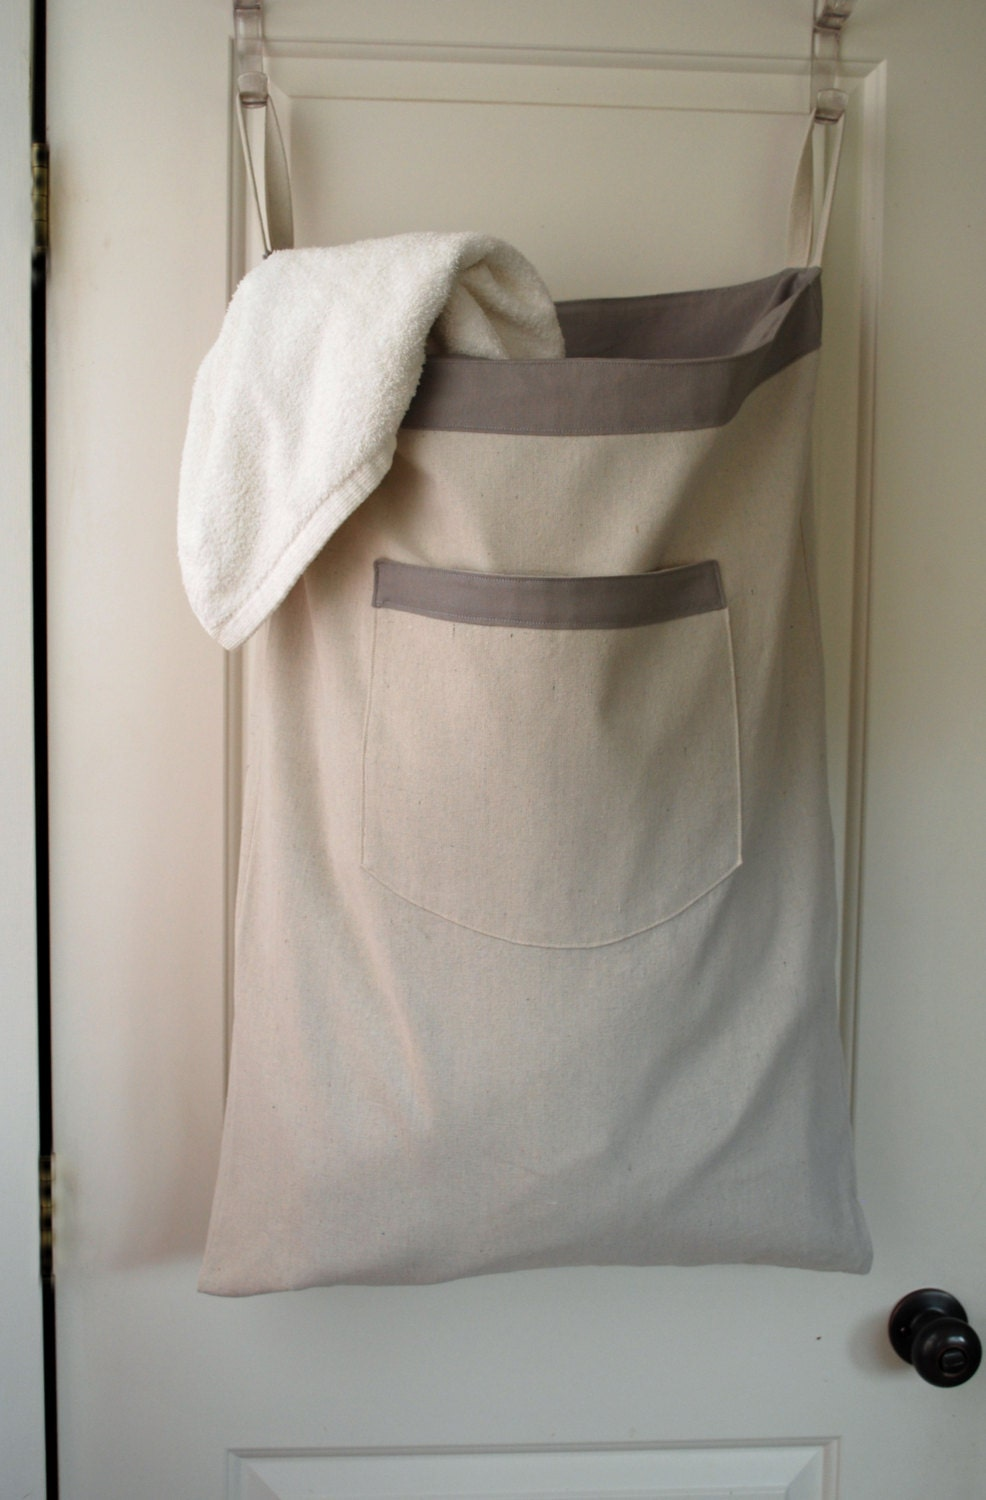 hanging her laundry bag gray drawstring bag with